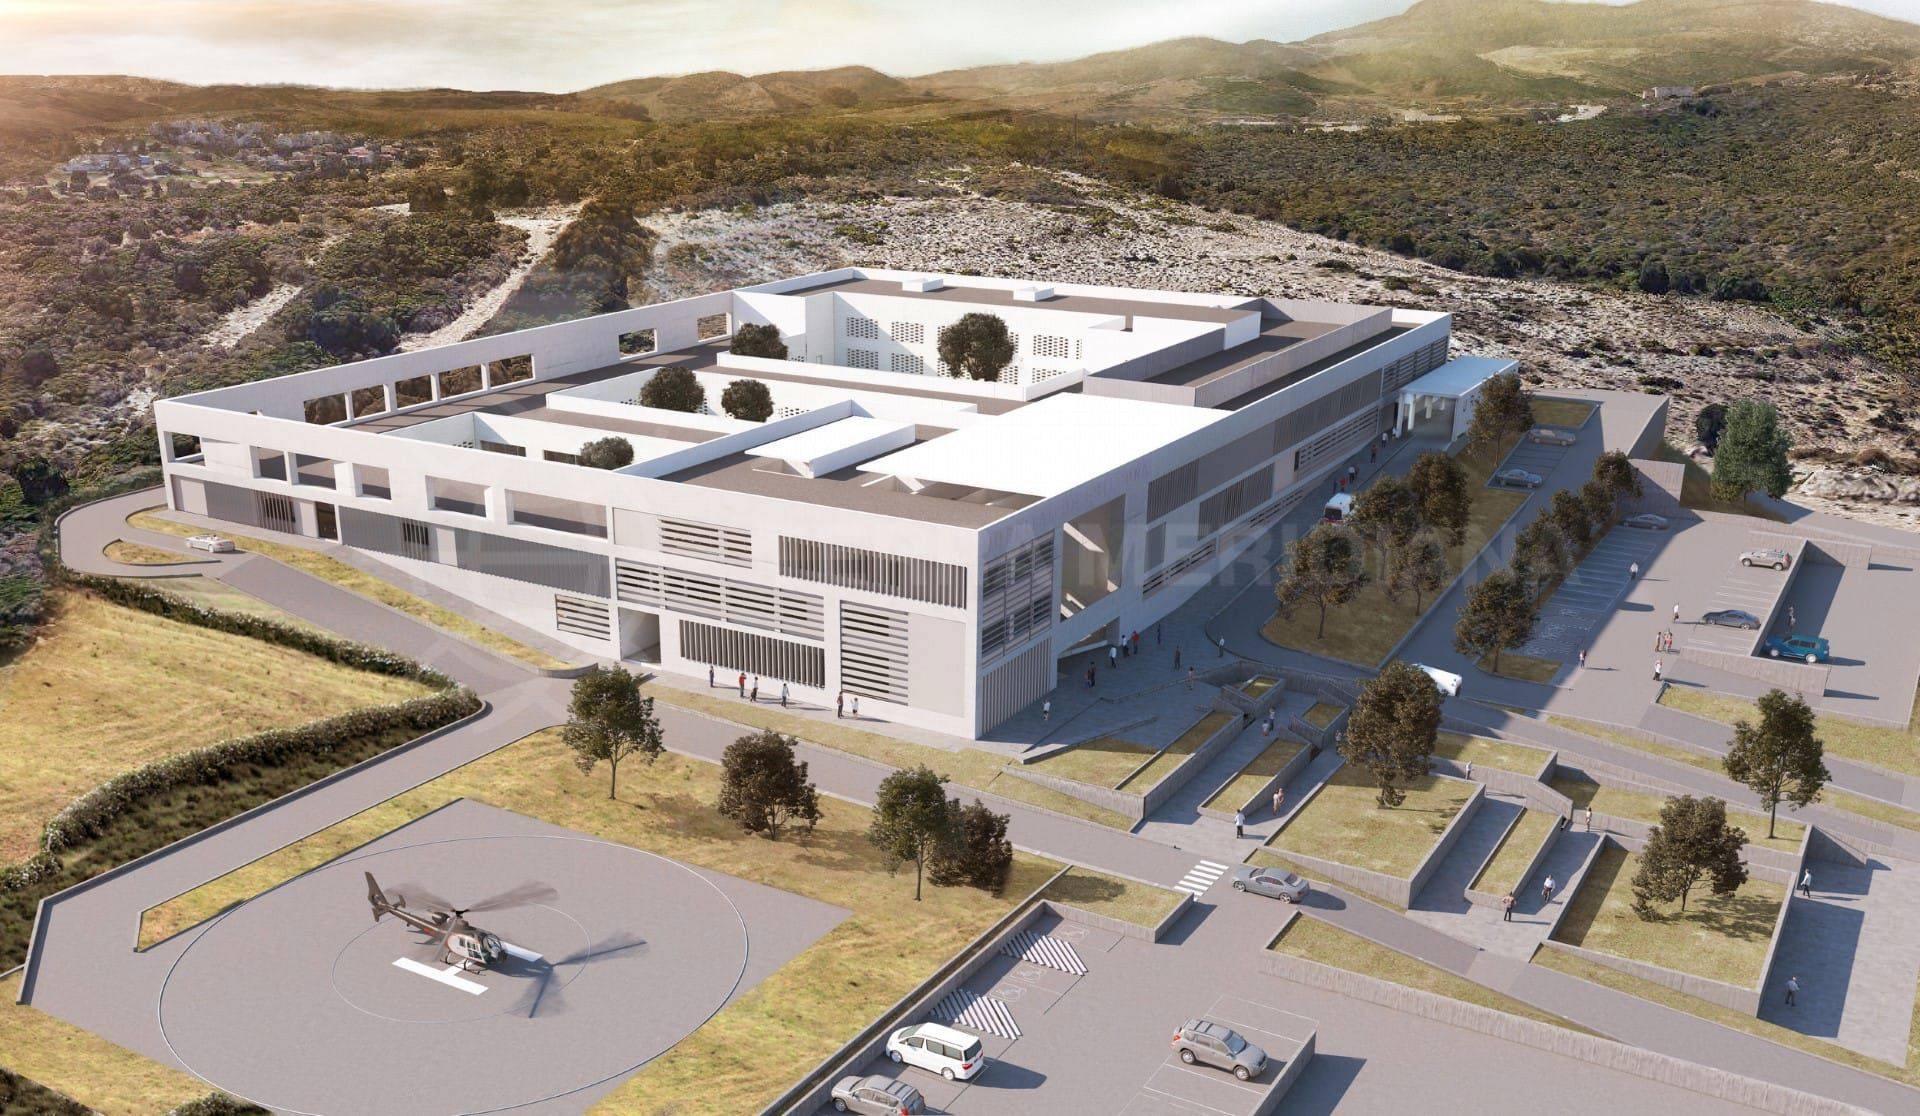 Construction work on new Estepona hospital completed in December 2018